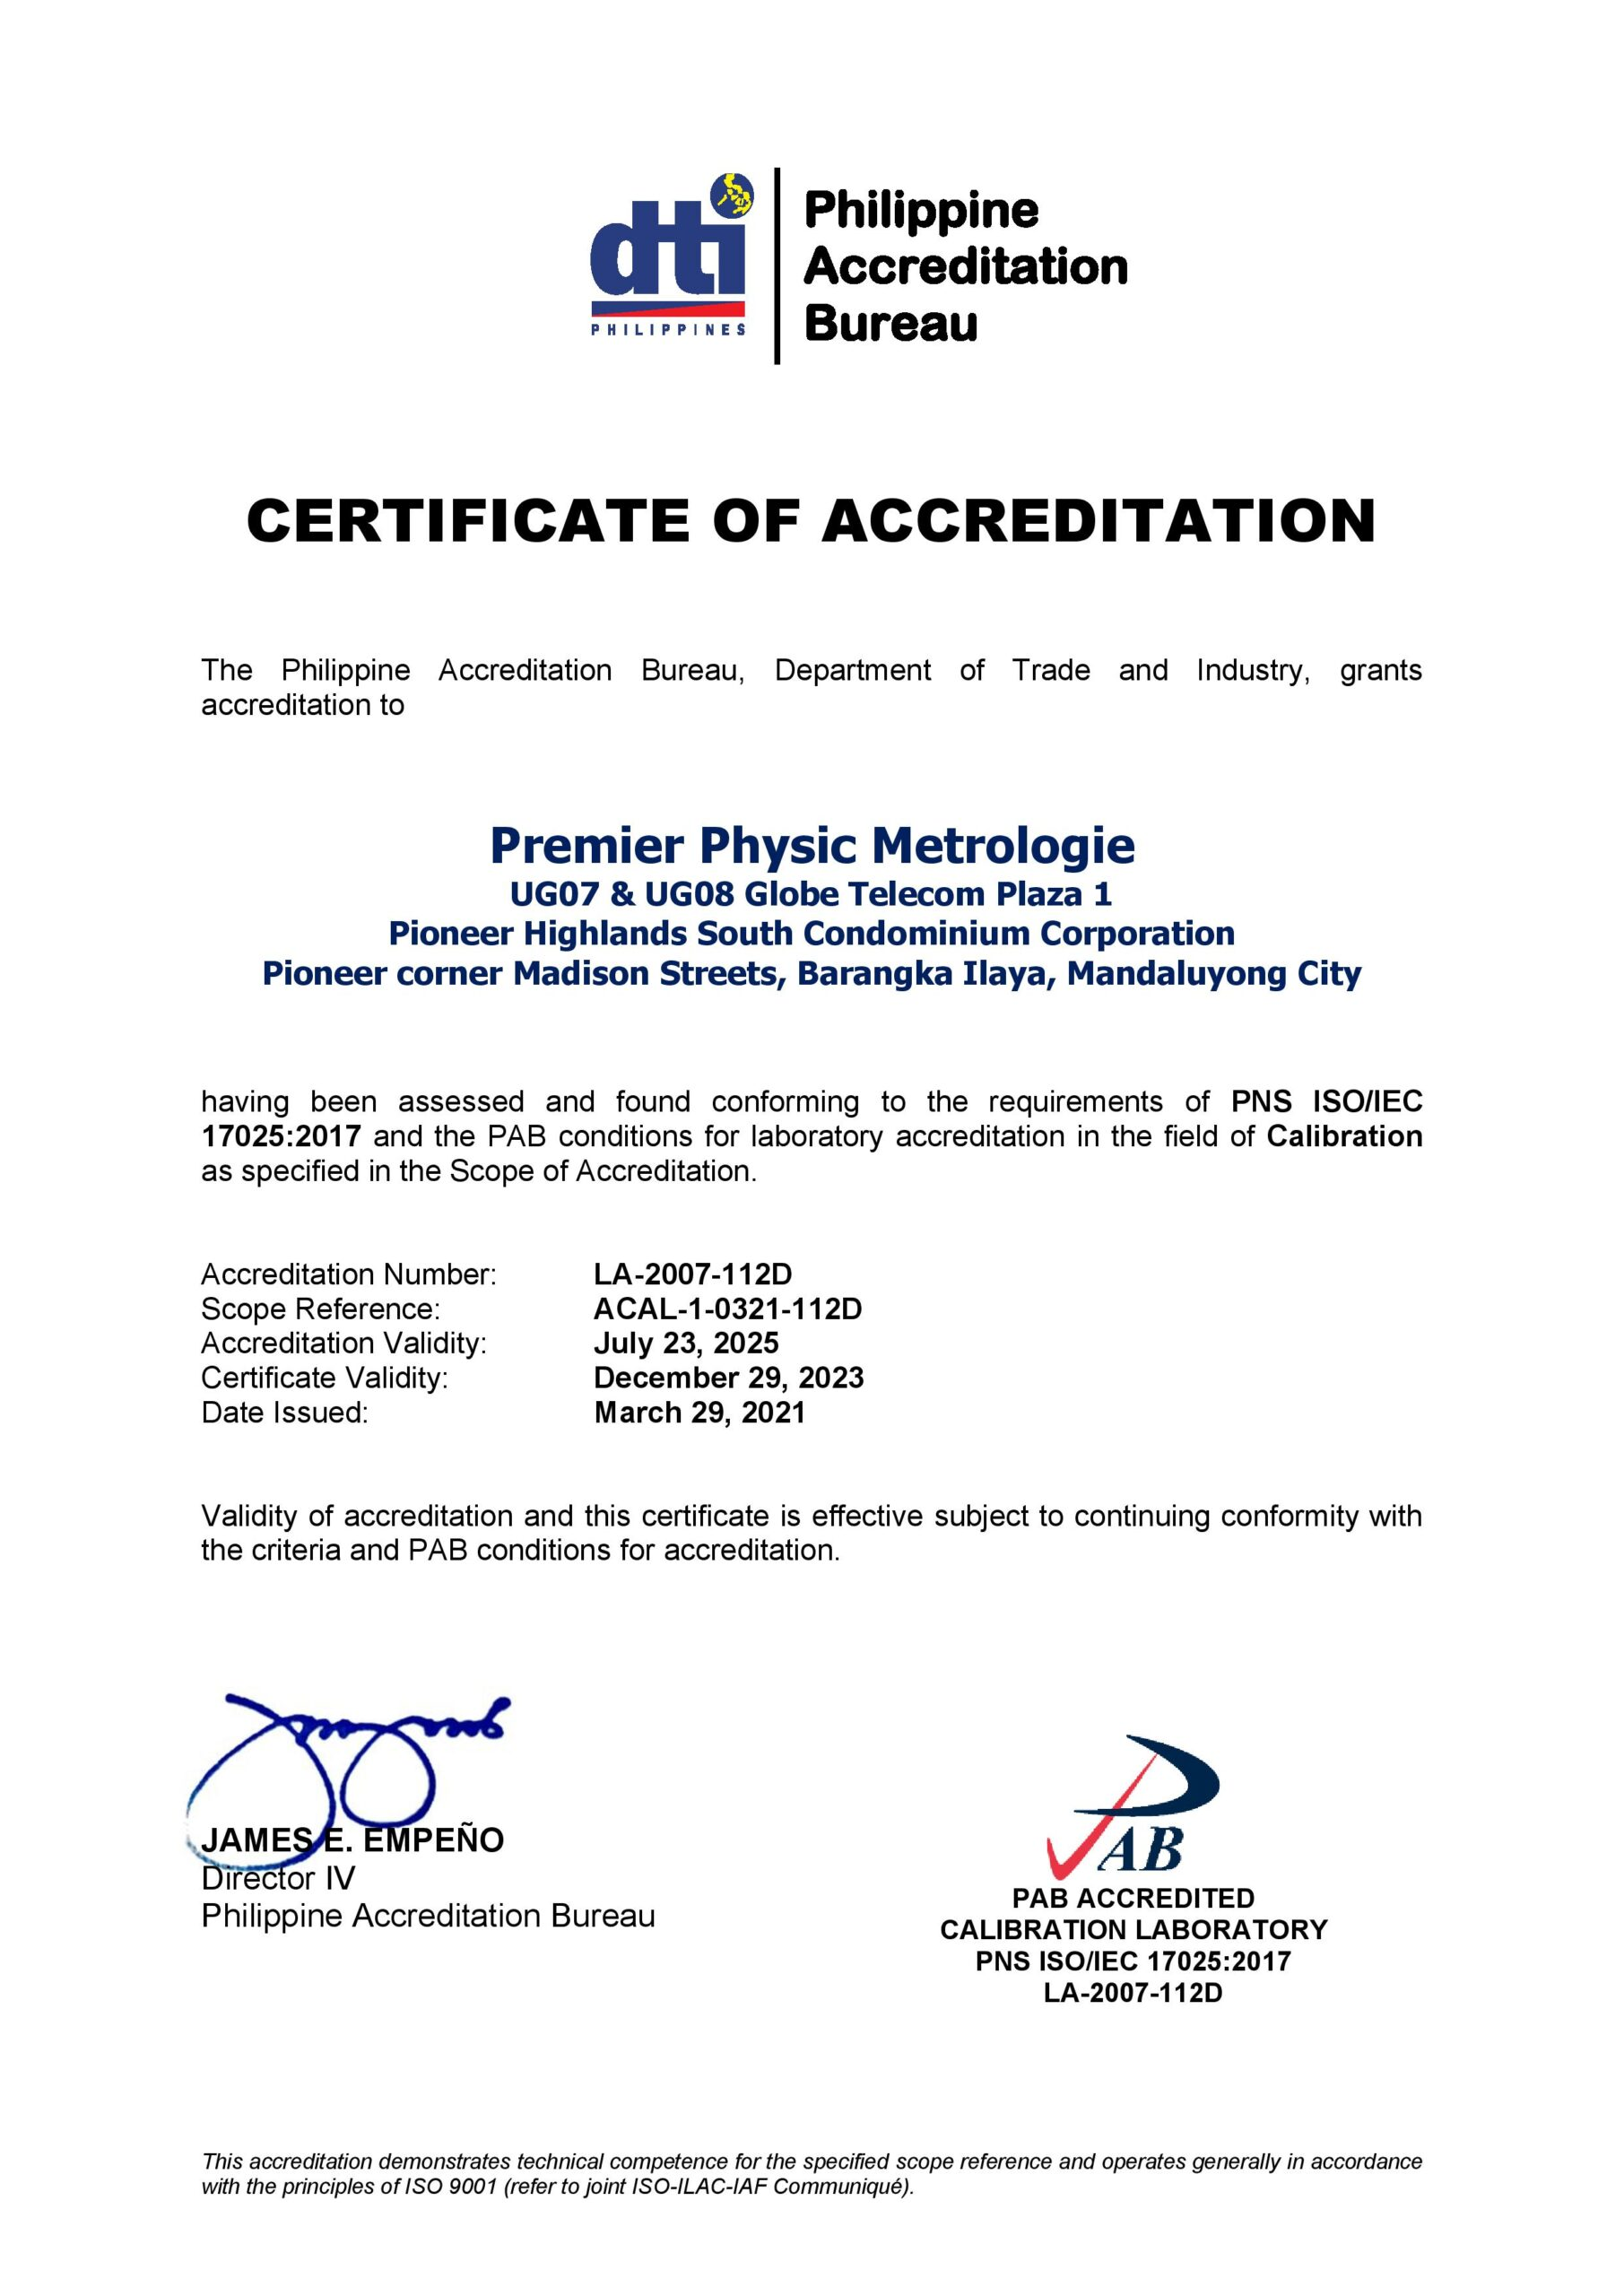 Premier Physic Metrologie - Certificate of Accreditation